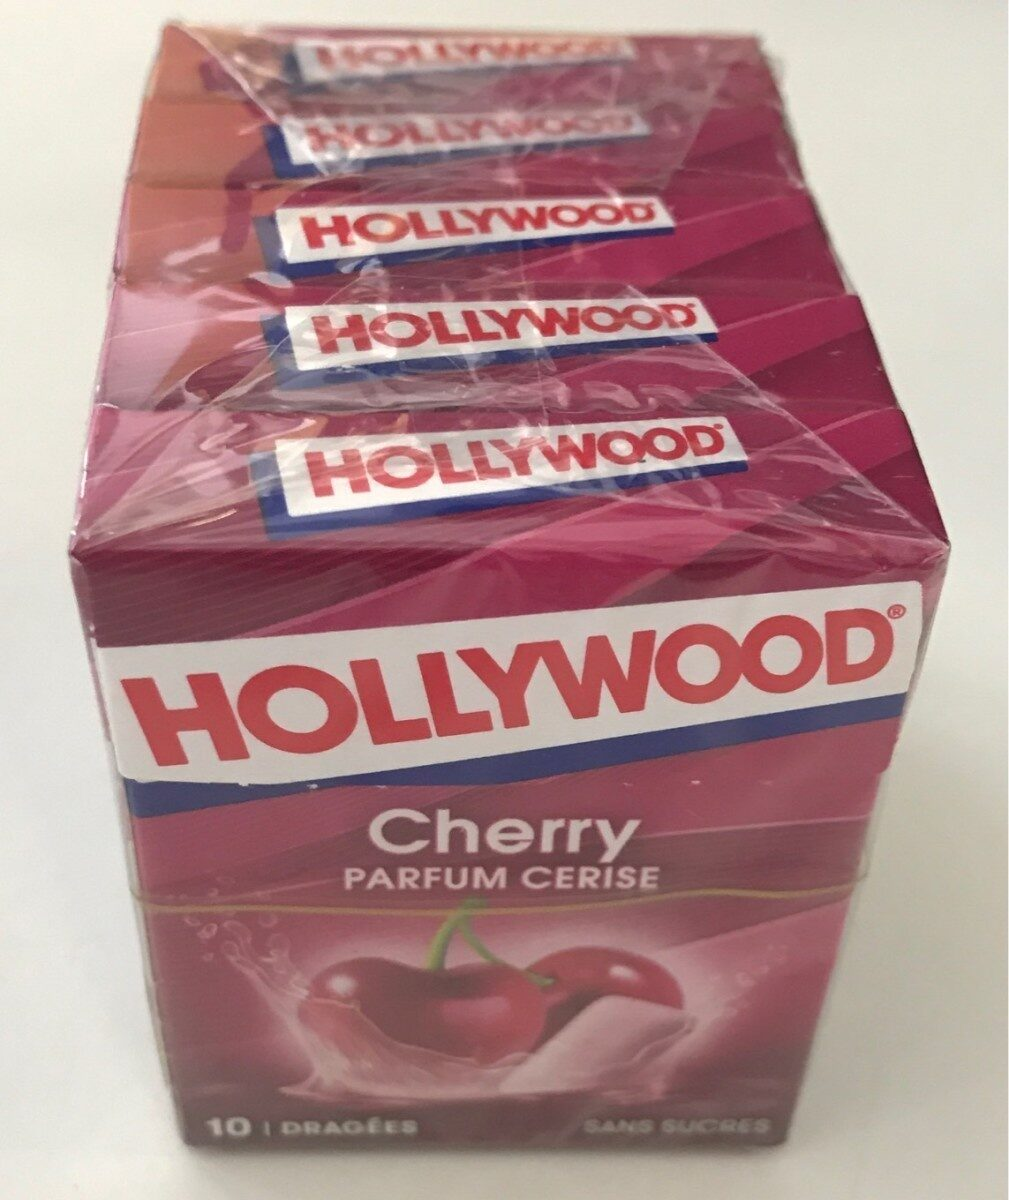 Hollywood Cherry parfum cerise - Product